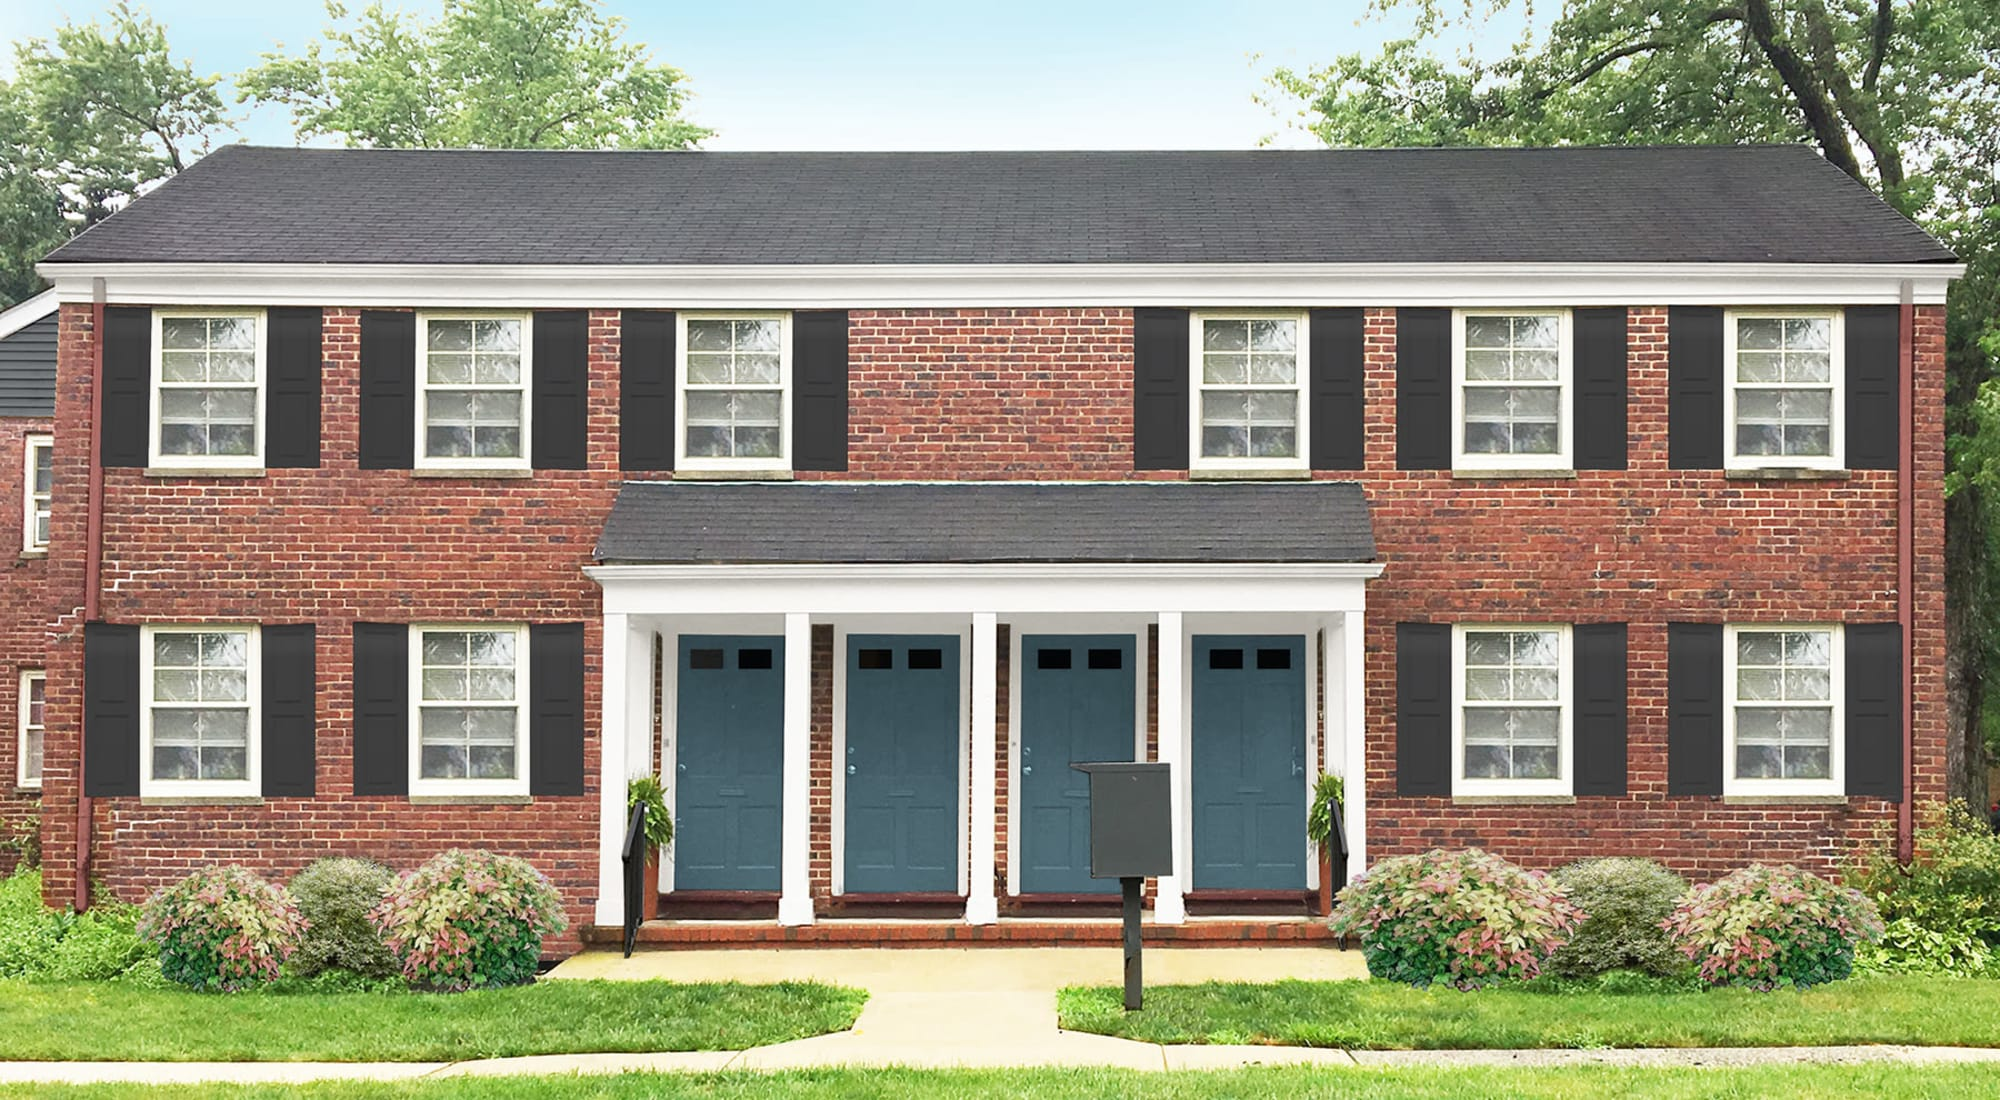 Floor plans at Haven New Providence in New Providence, New Jersey